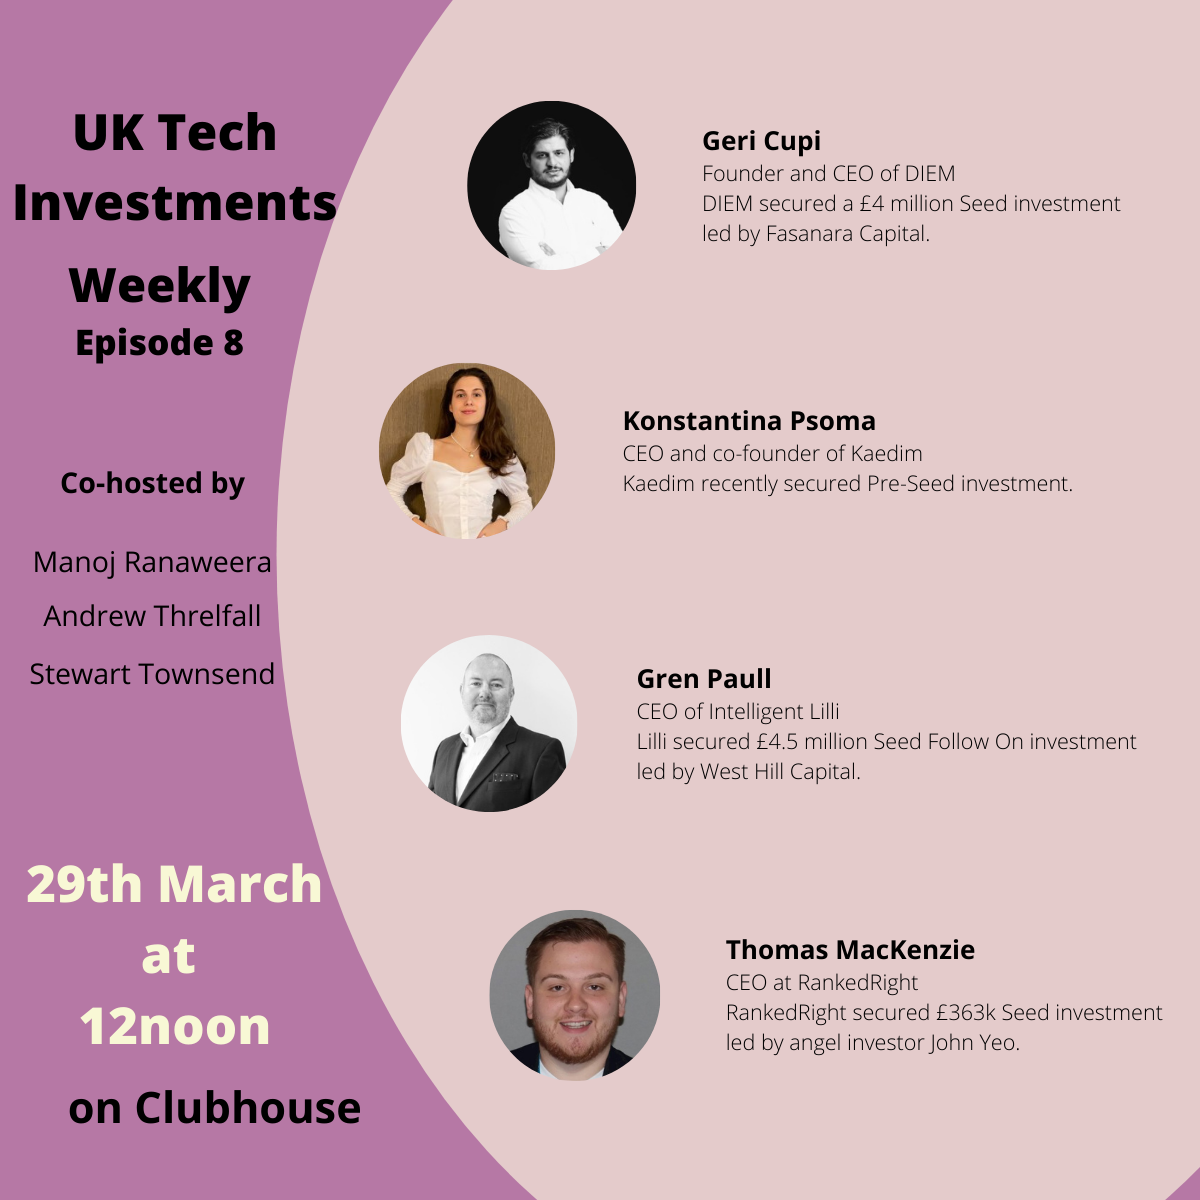 UK Tech Investments Weekly 8